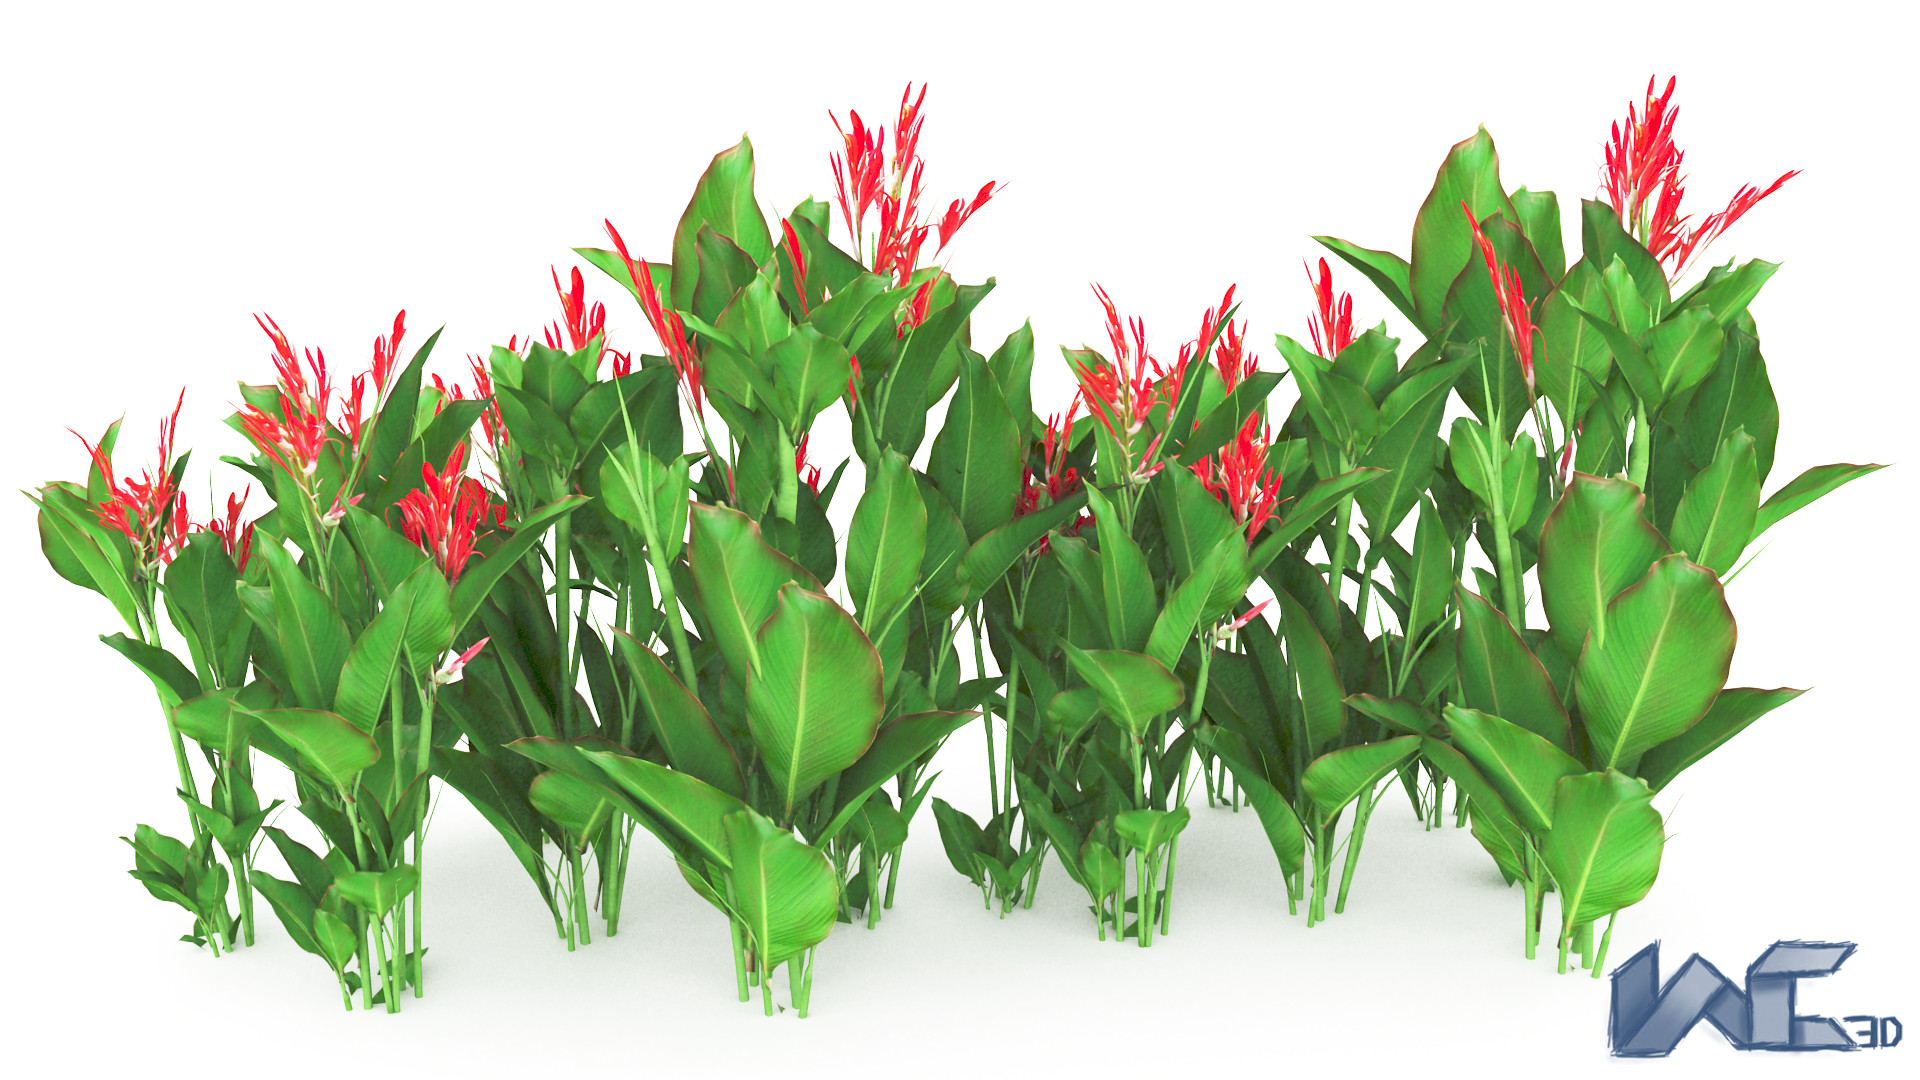 Searched 3d models for Canna indica.